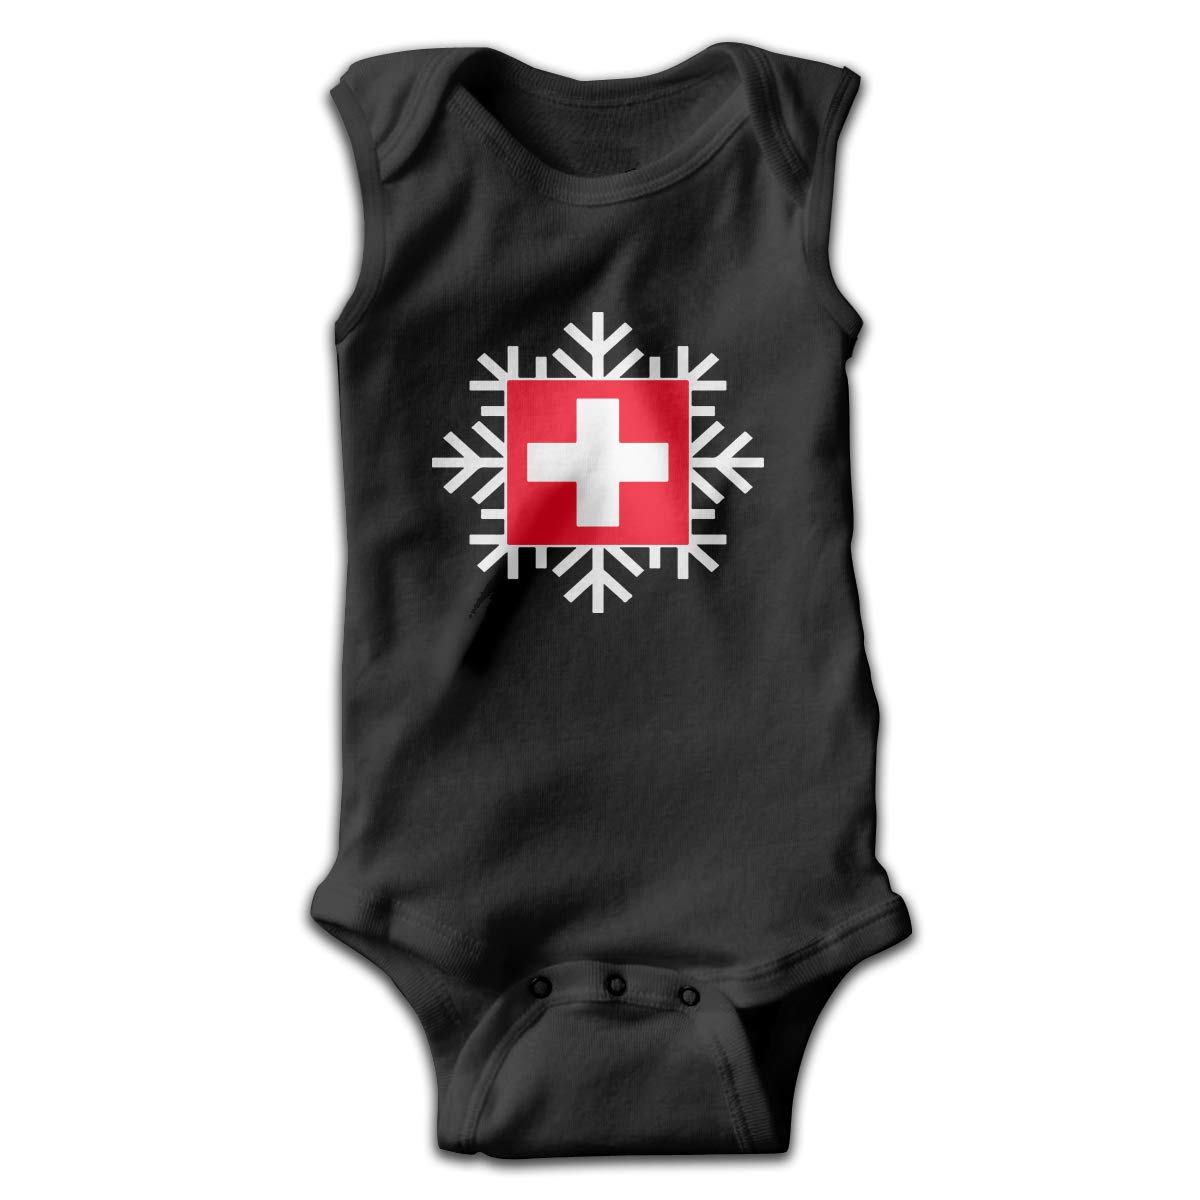 Newborn Swiss Flag Snowflake Sleeveless Baby Clothes Bodysuits Jumpsuit 100/% Cotton